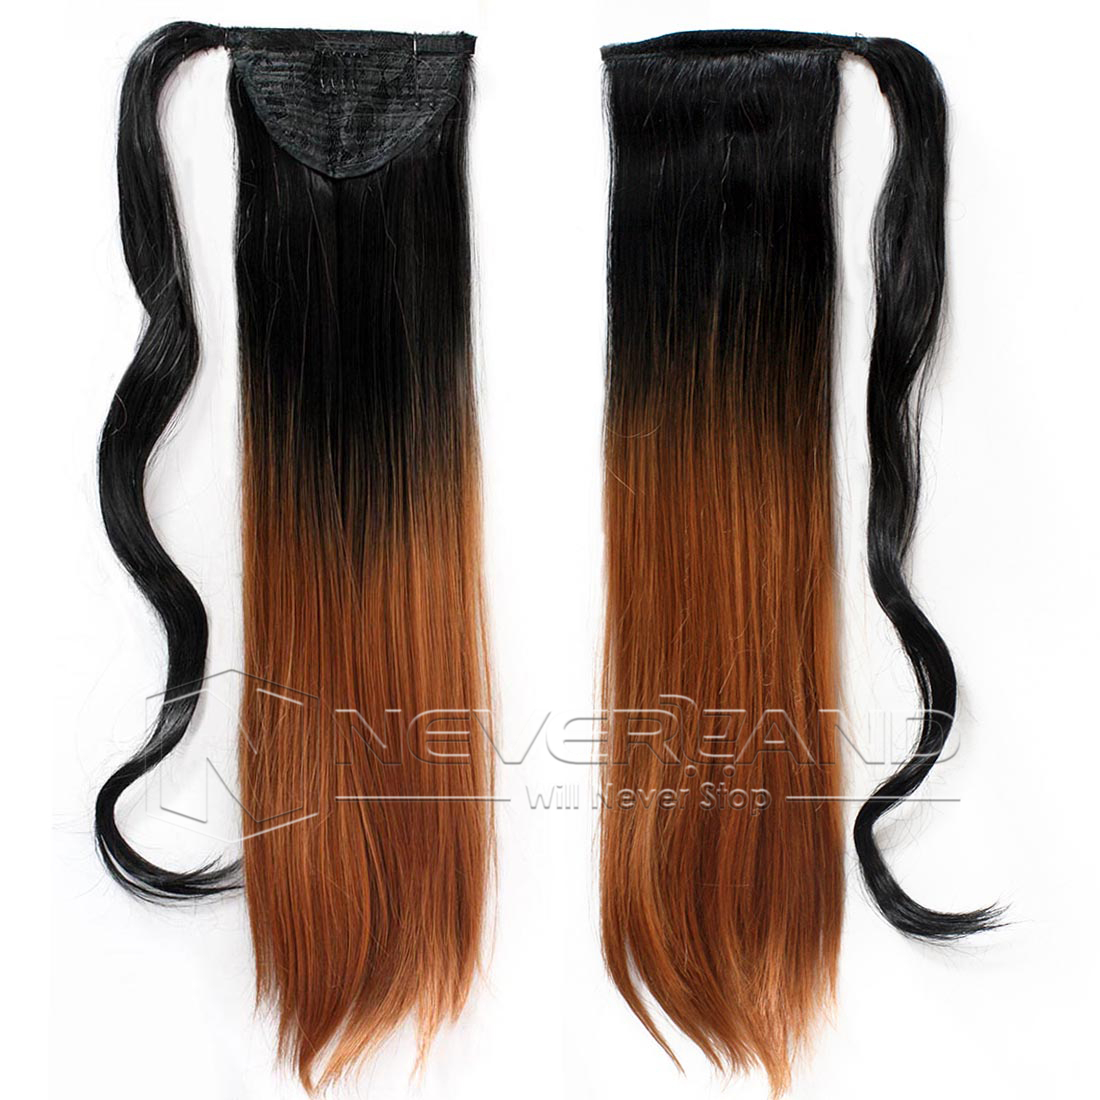 ... -Hair-Wrap-On-Ponytail-Hair-Piece-Clip-In-Pony-Tail-Hair-Extensions